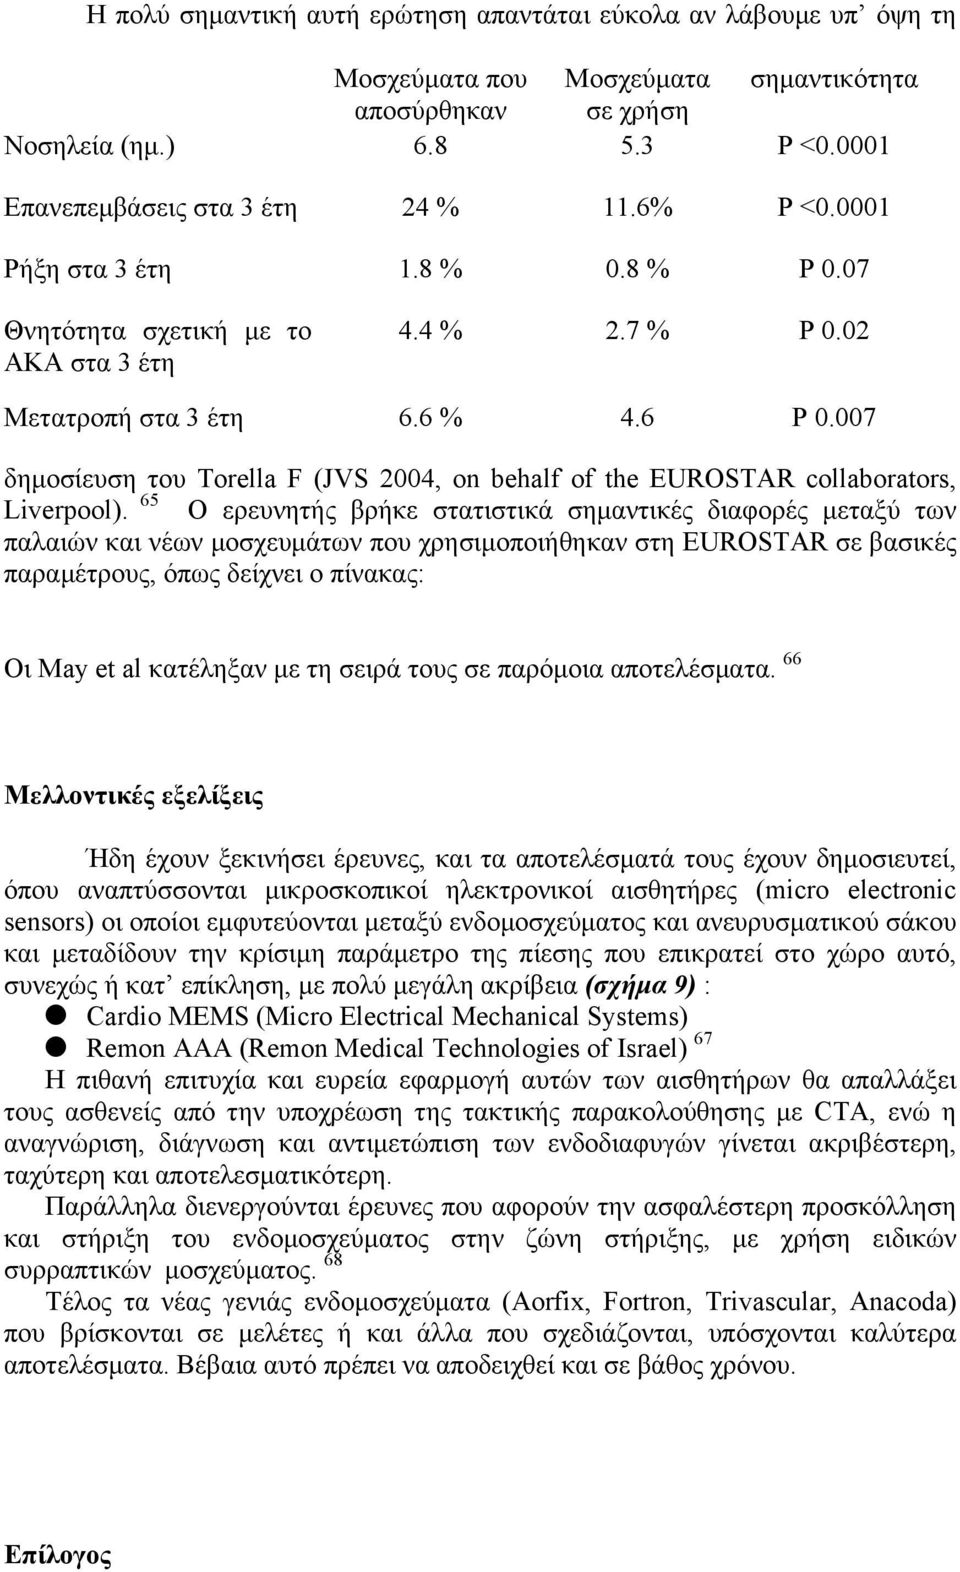 007 δηµοσίευση του Torella F (JVS 2004, on behalf of the EUROSTAR collaborators, Liverpool).